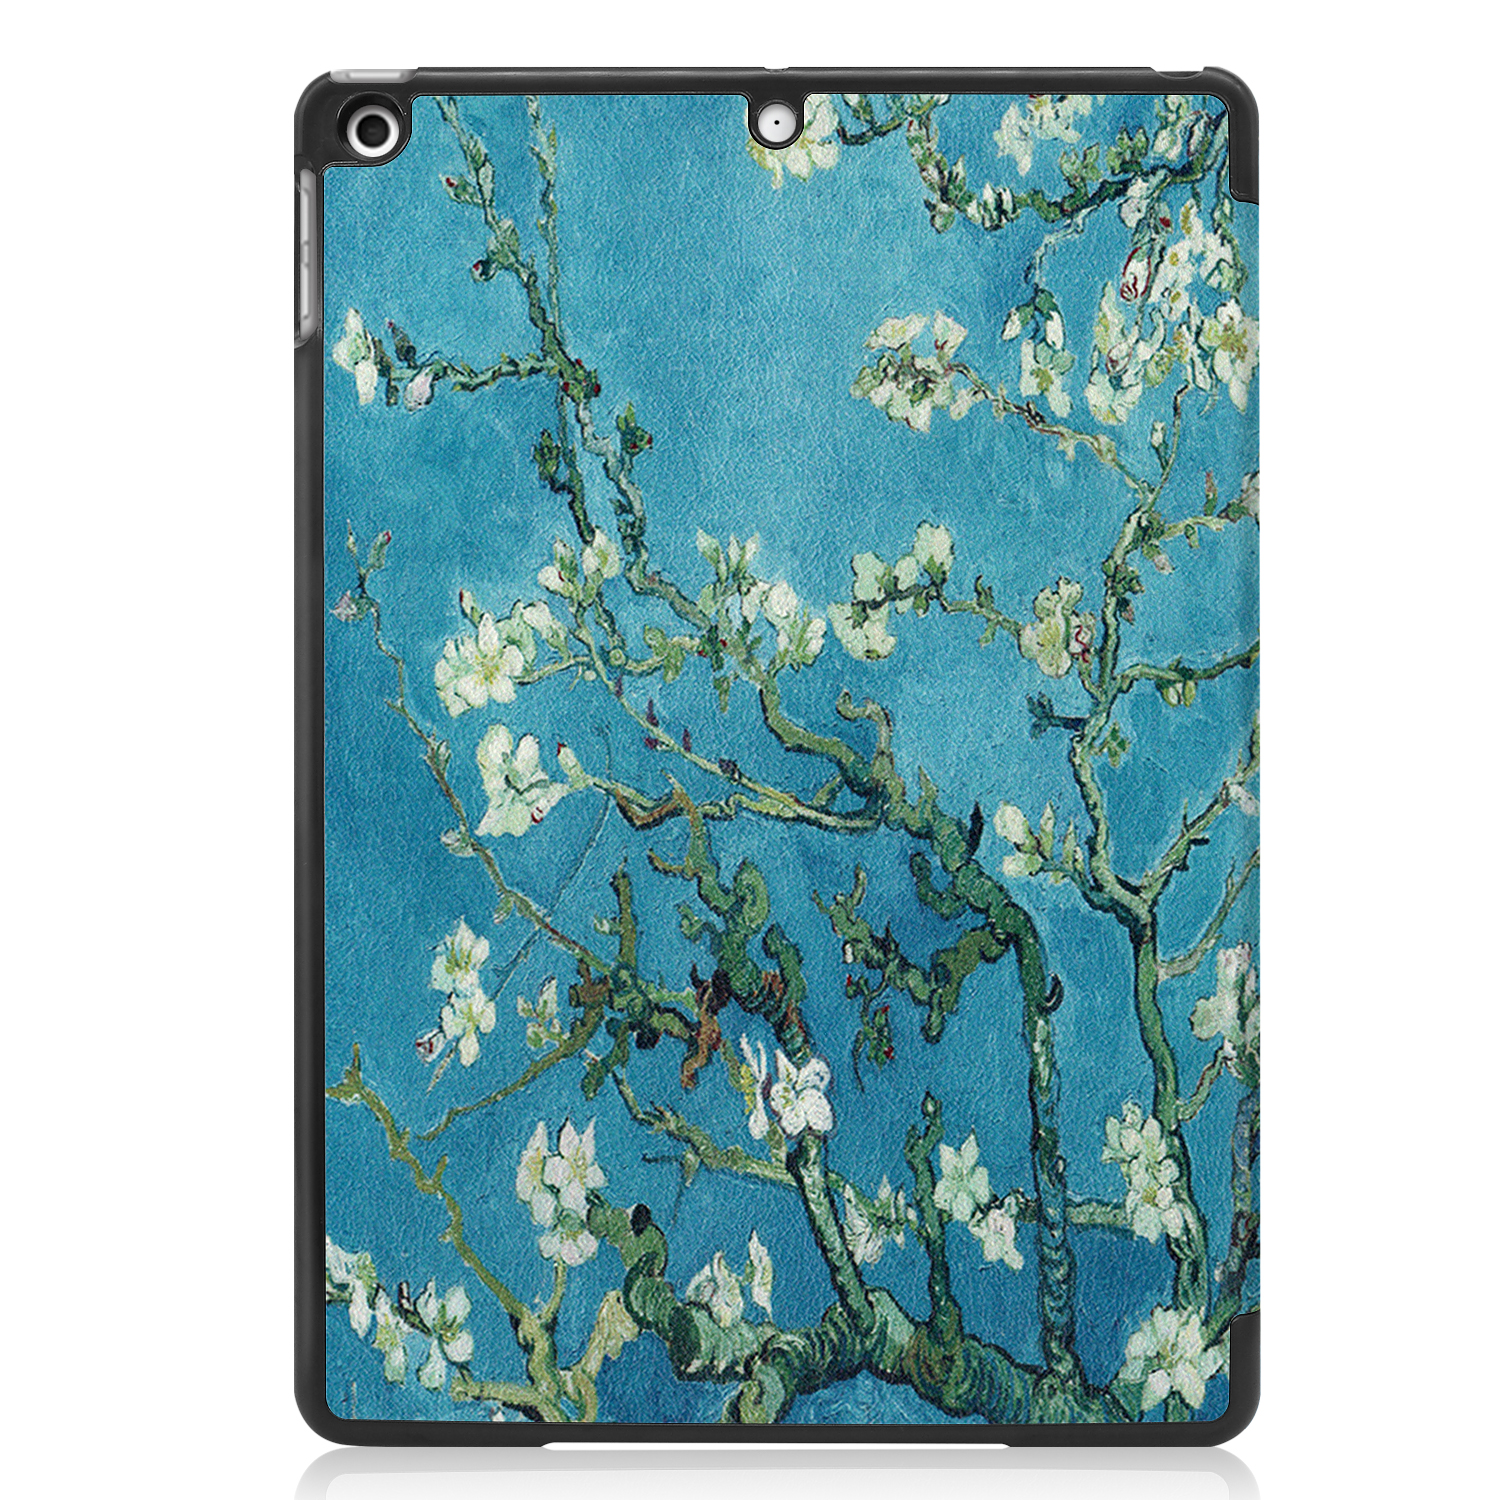 iPad/8th/Cas 8-8th-Generation Smart-Cover Case Sleep A2428/a2429 for iPad Magnetic Apple